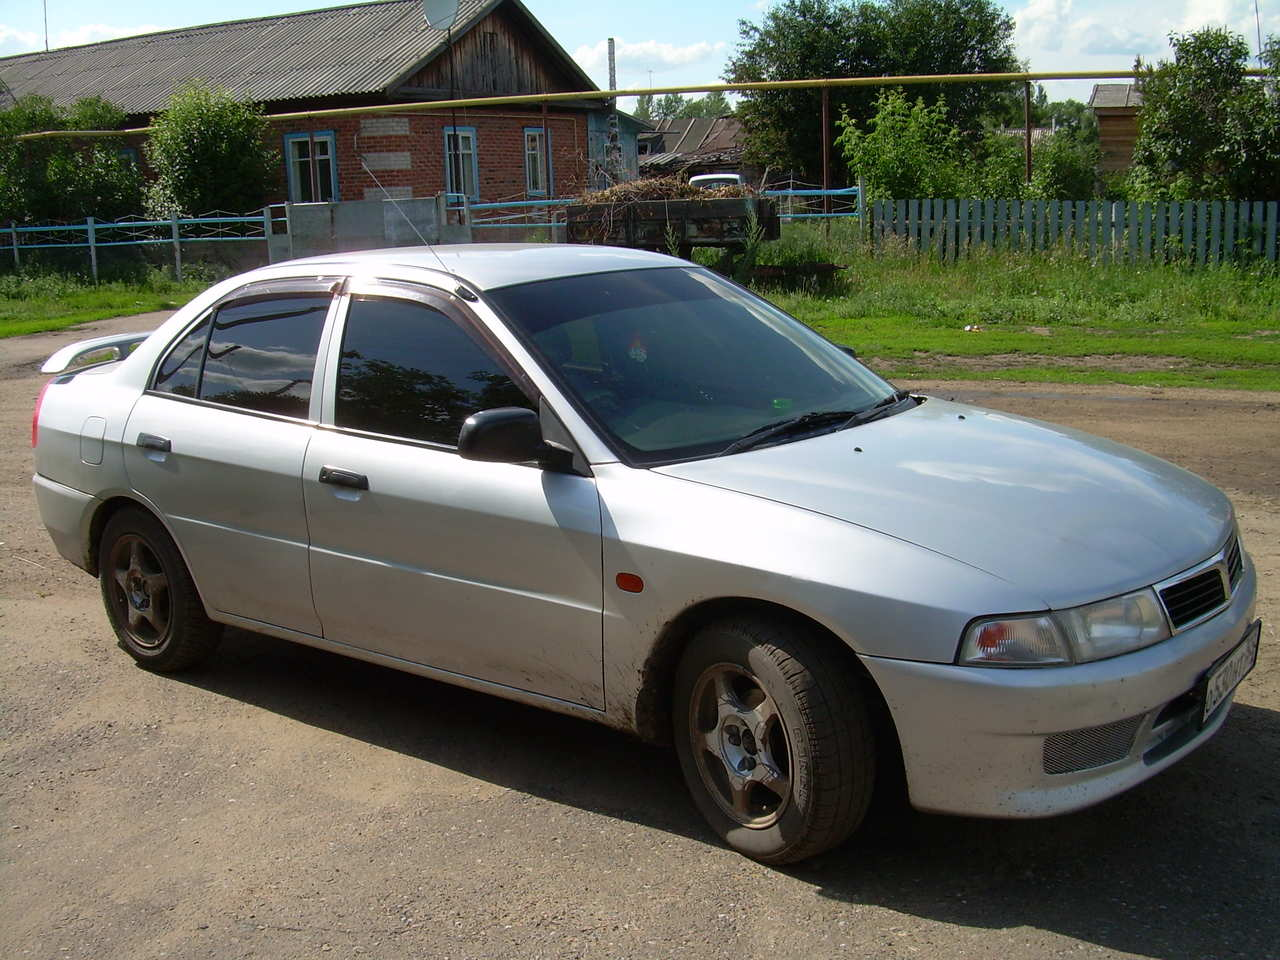 Used 2000 Mitsubishi Lancer Photos, 1300cc., Gasoline, FF, Automatic